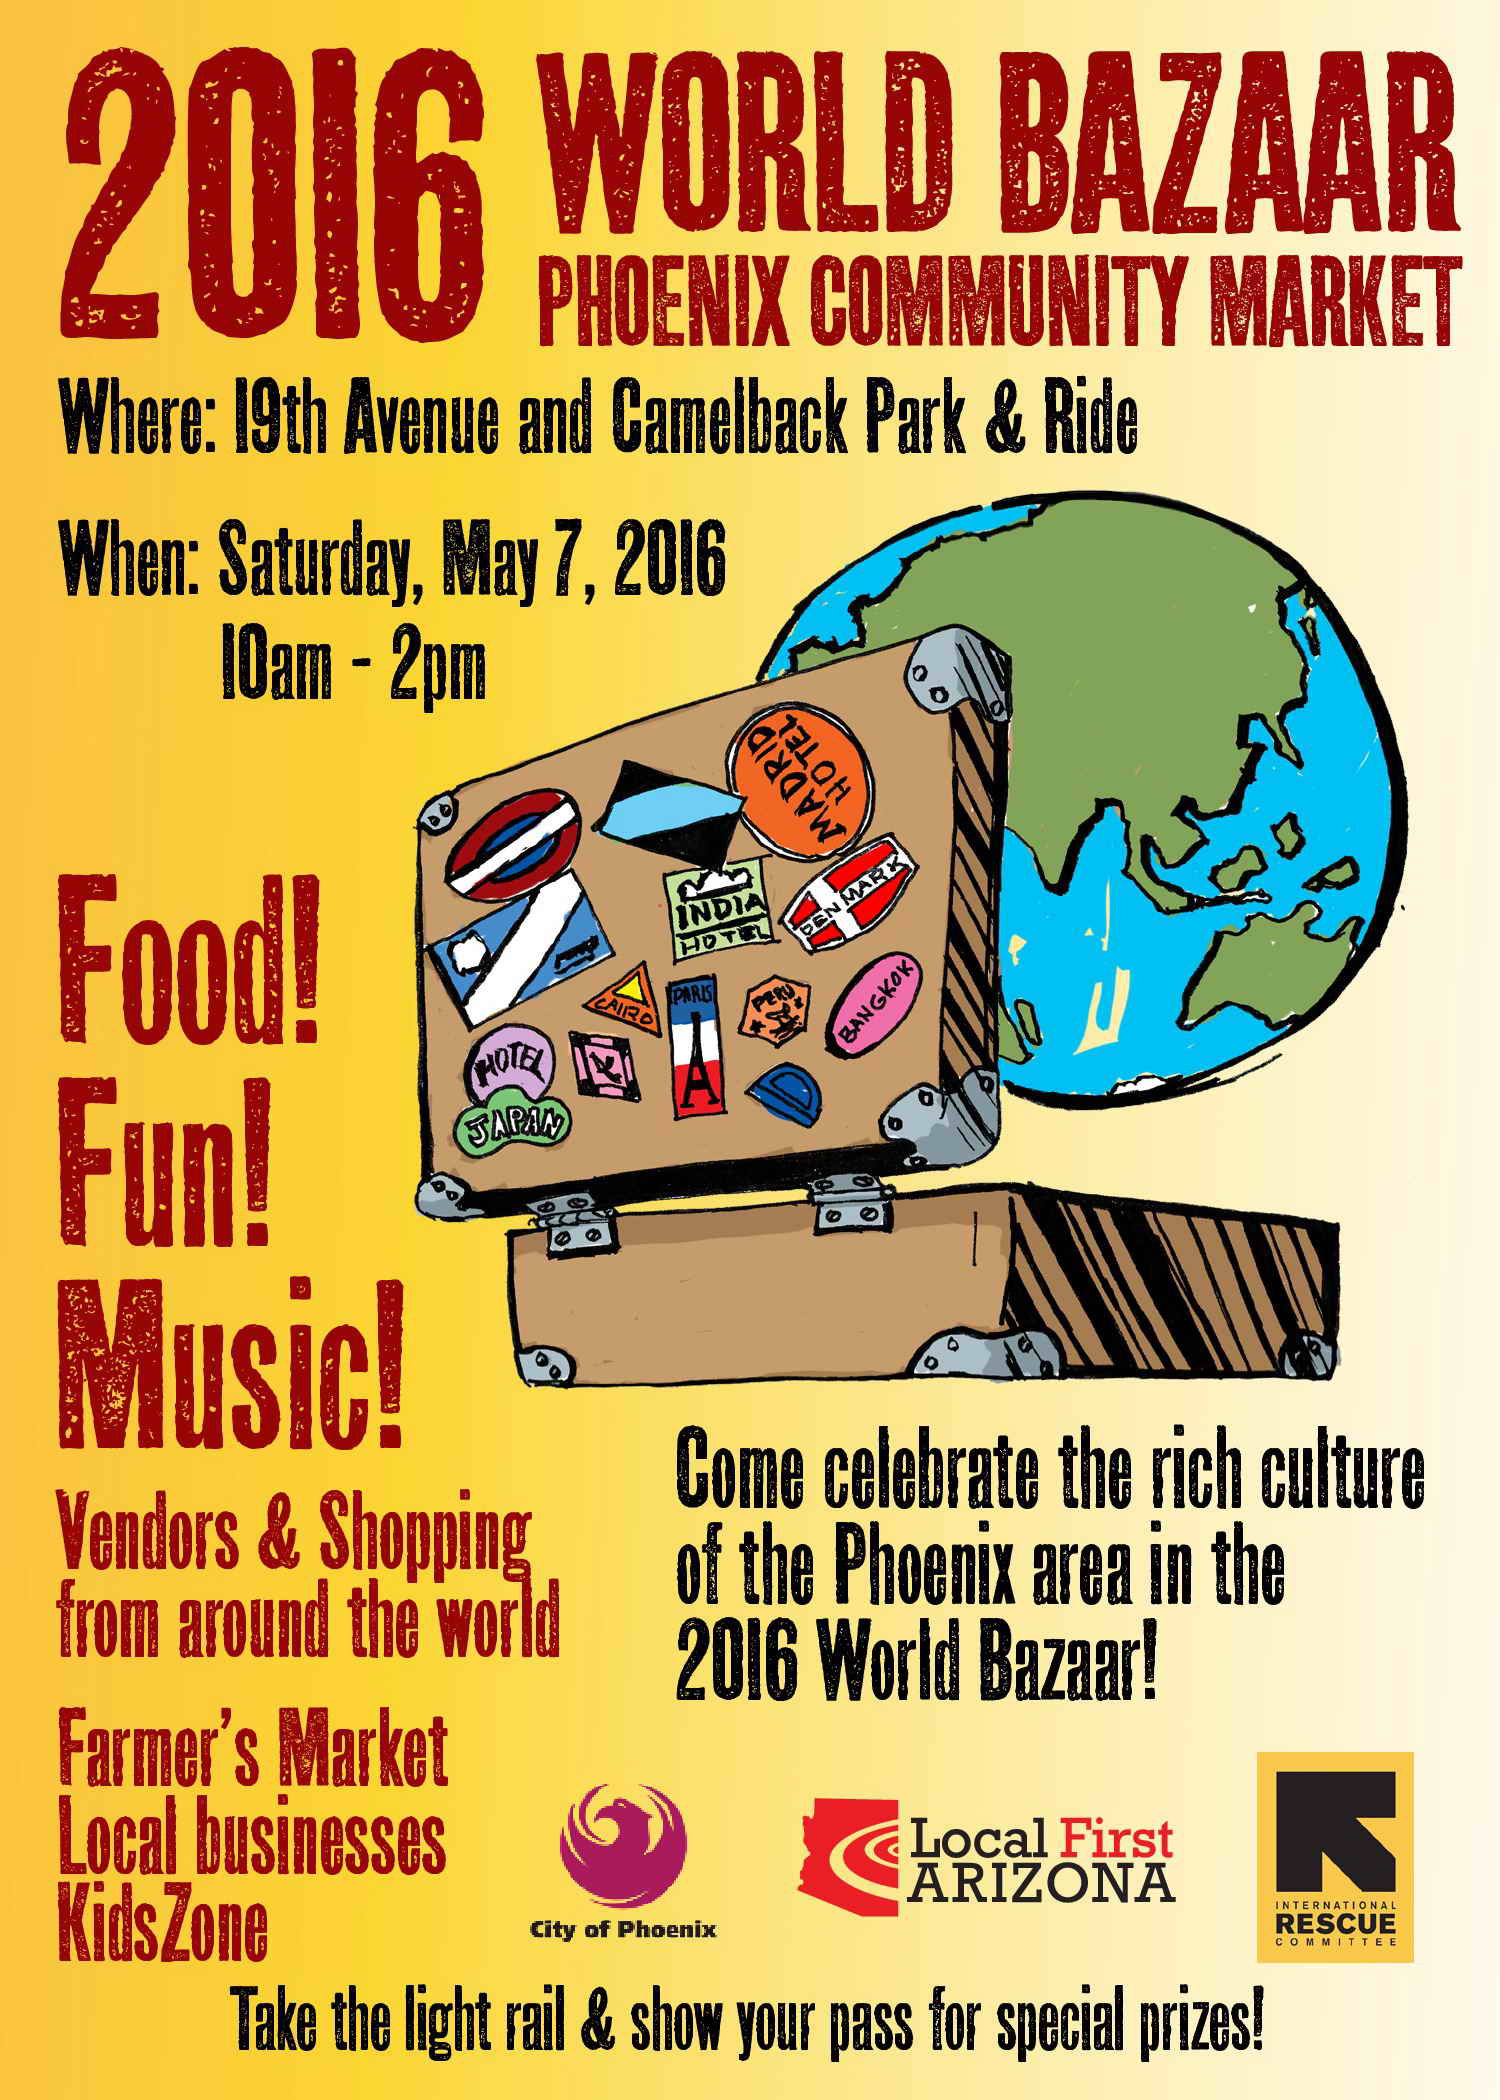 2016 World Bazaar flyer